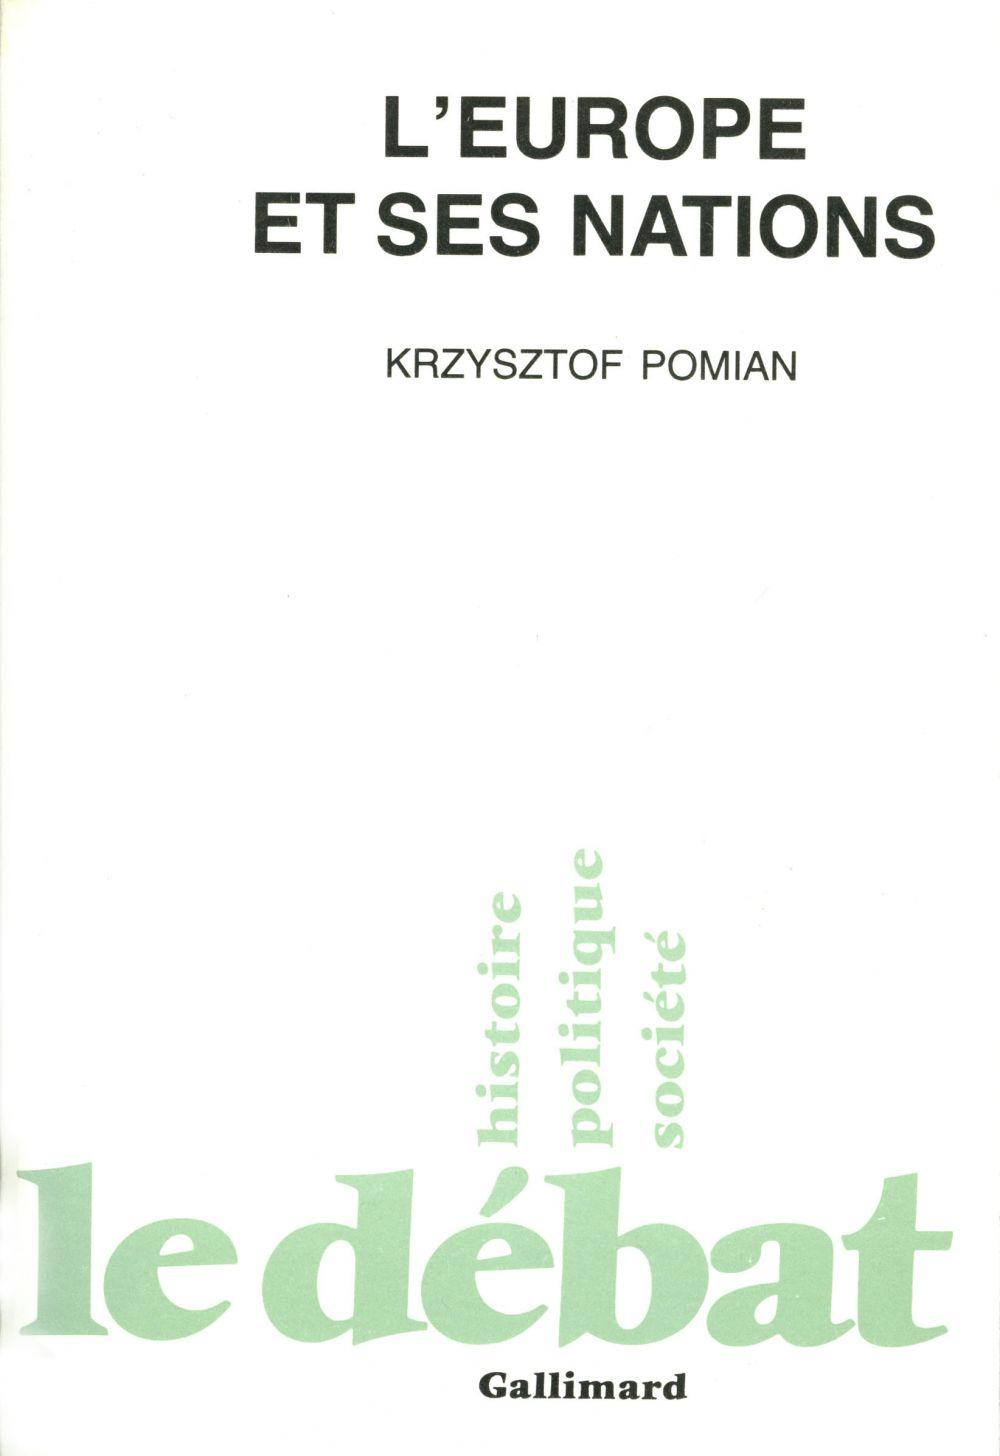 L'Europe et ses nations